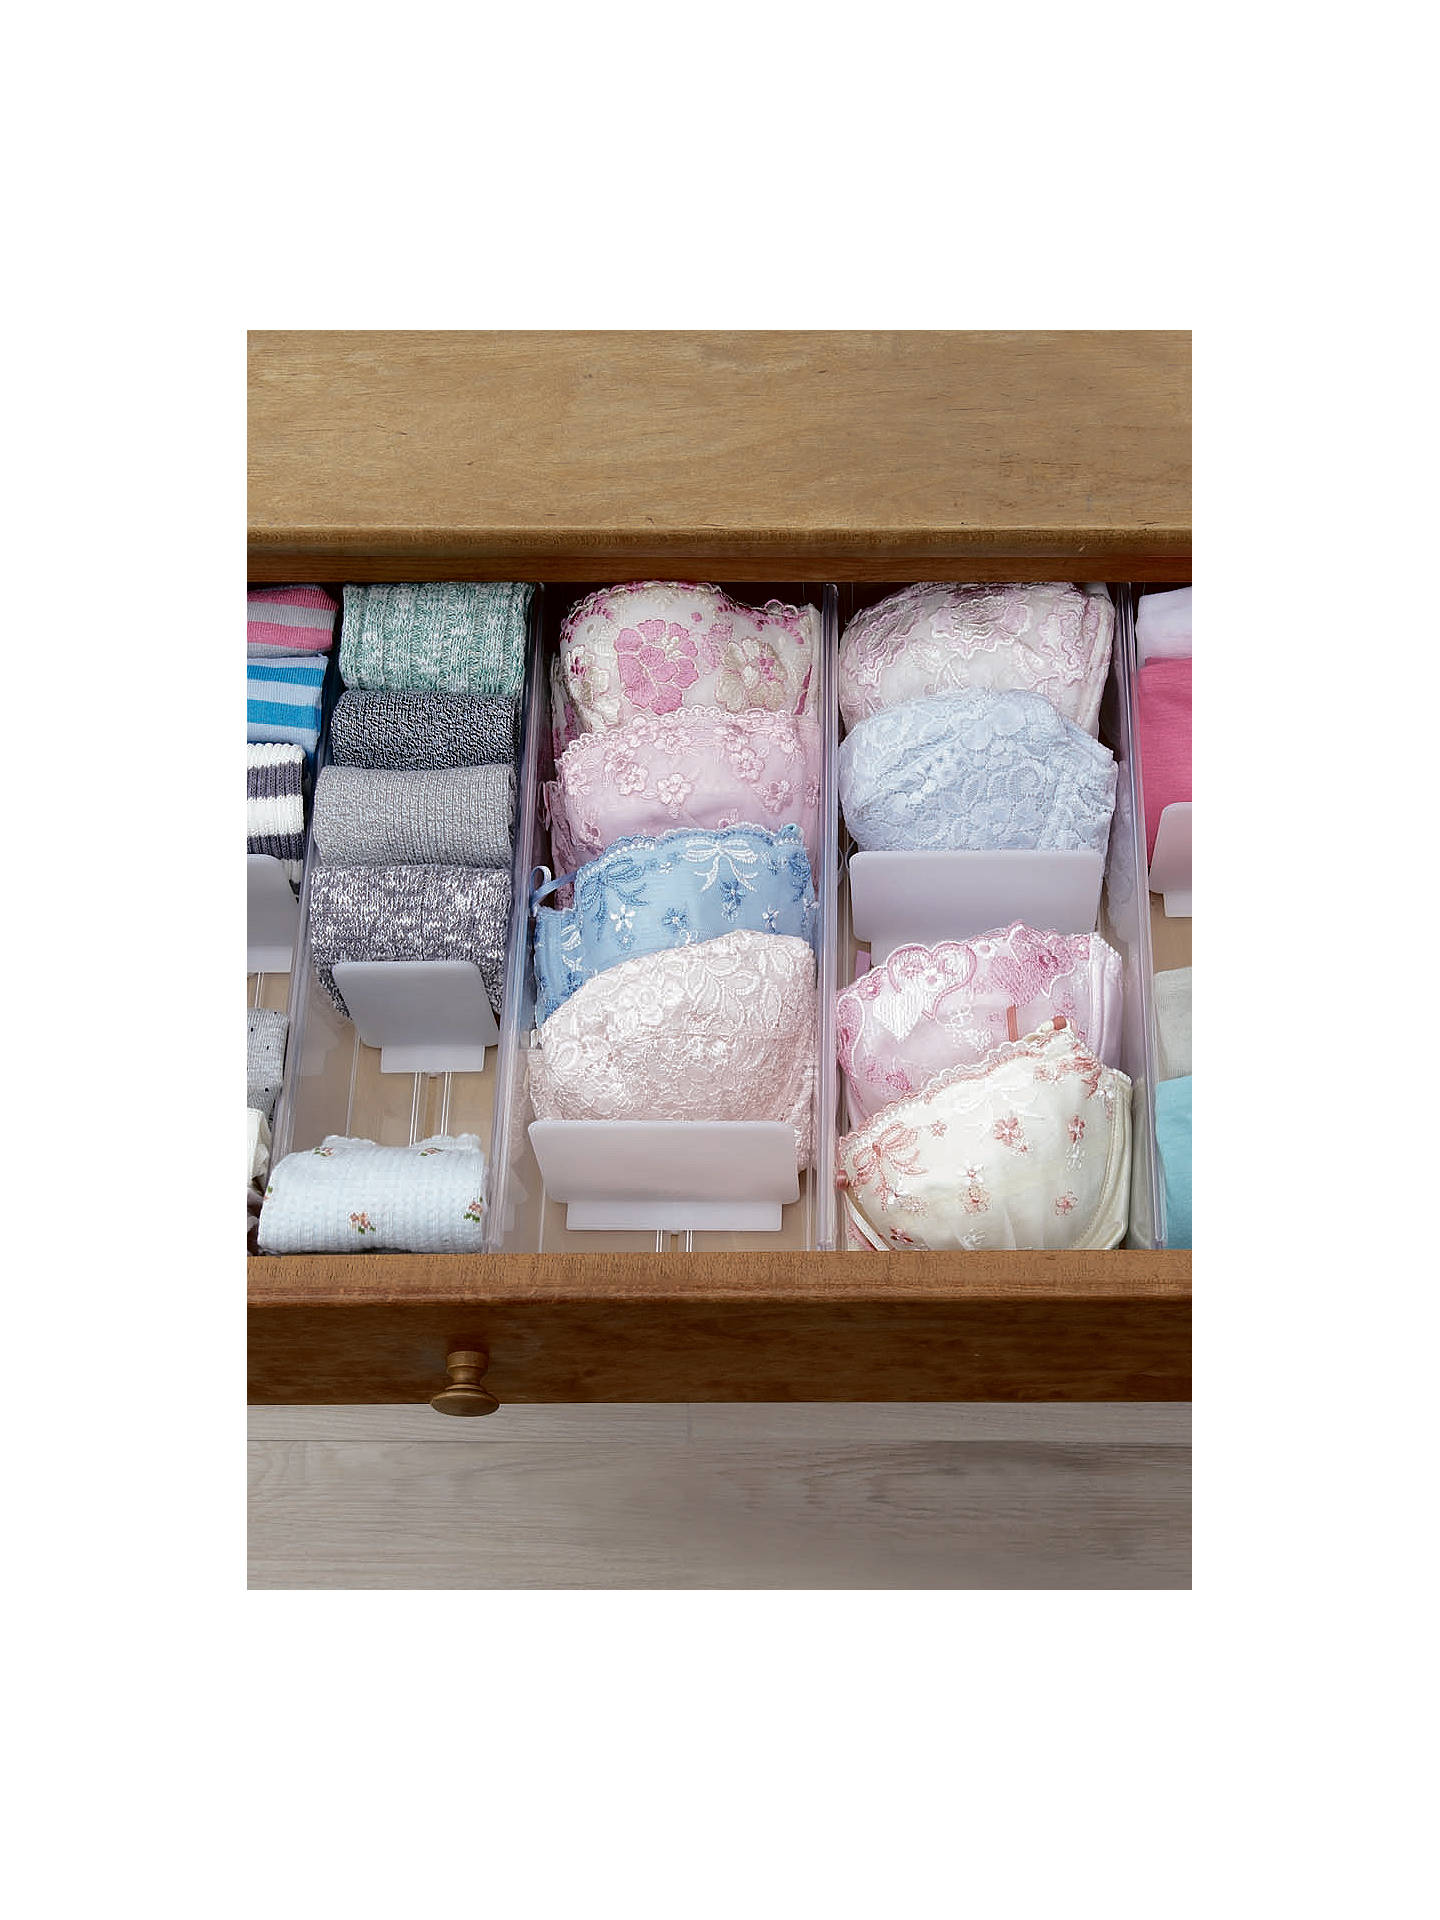 Buylike-it Socks Drawer Tidy Online at johnlewis.com